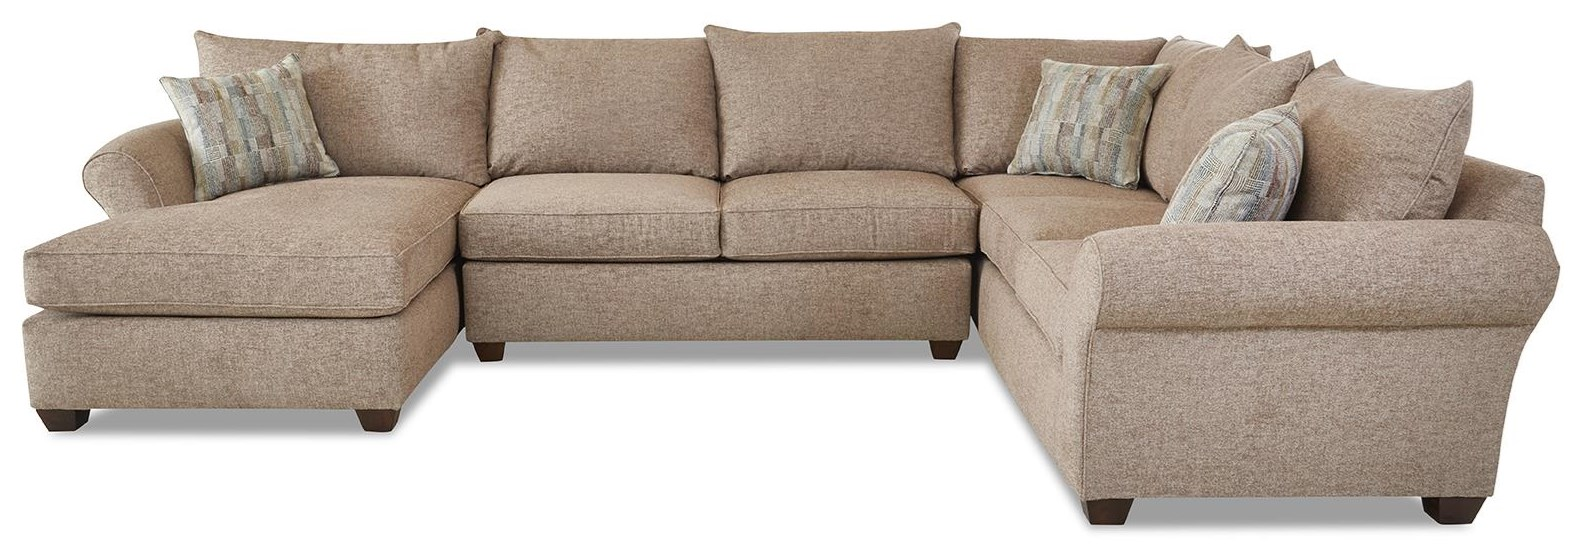 Fletcher Sectional Sofa with Chaise by Klaussner at Johnny Janosik